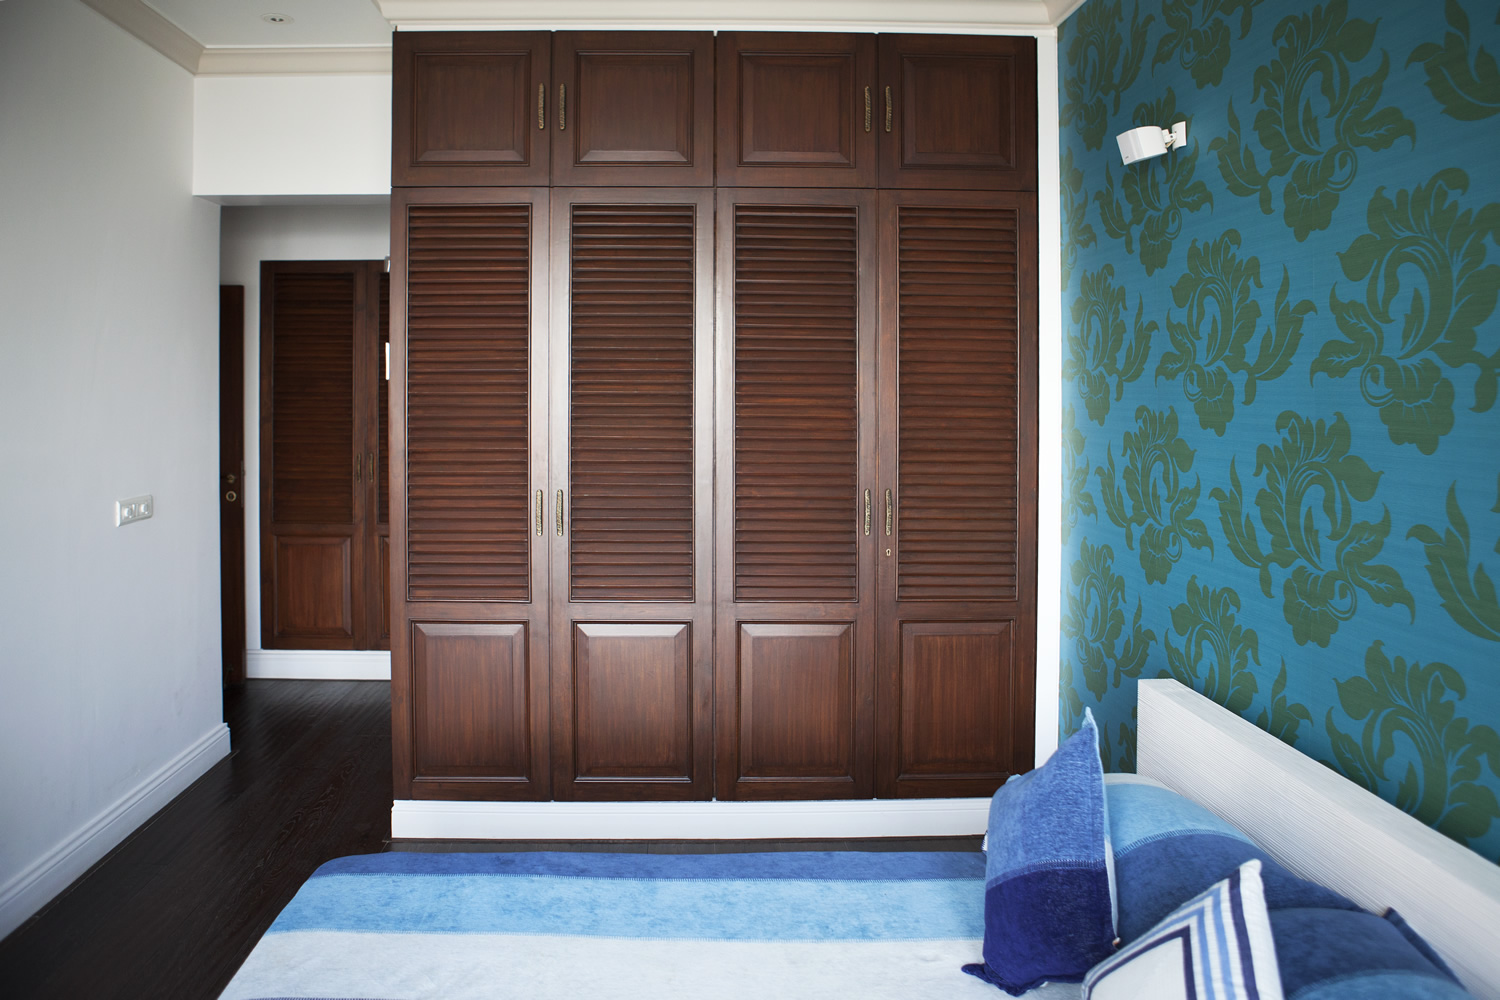 Indian bedroom furniture designs - The Beautiful Blue Flower Design Wallpaper Looks Great With The Simple Old Design Of Wardrobes The Wardrobes Of The Bedroom Are Look So Beautiful That We